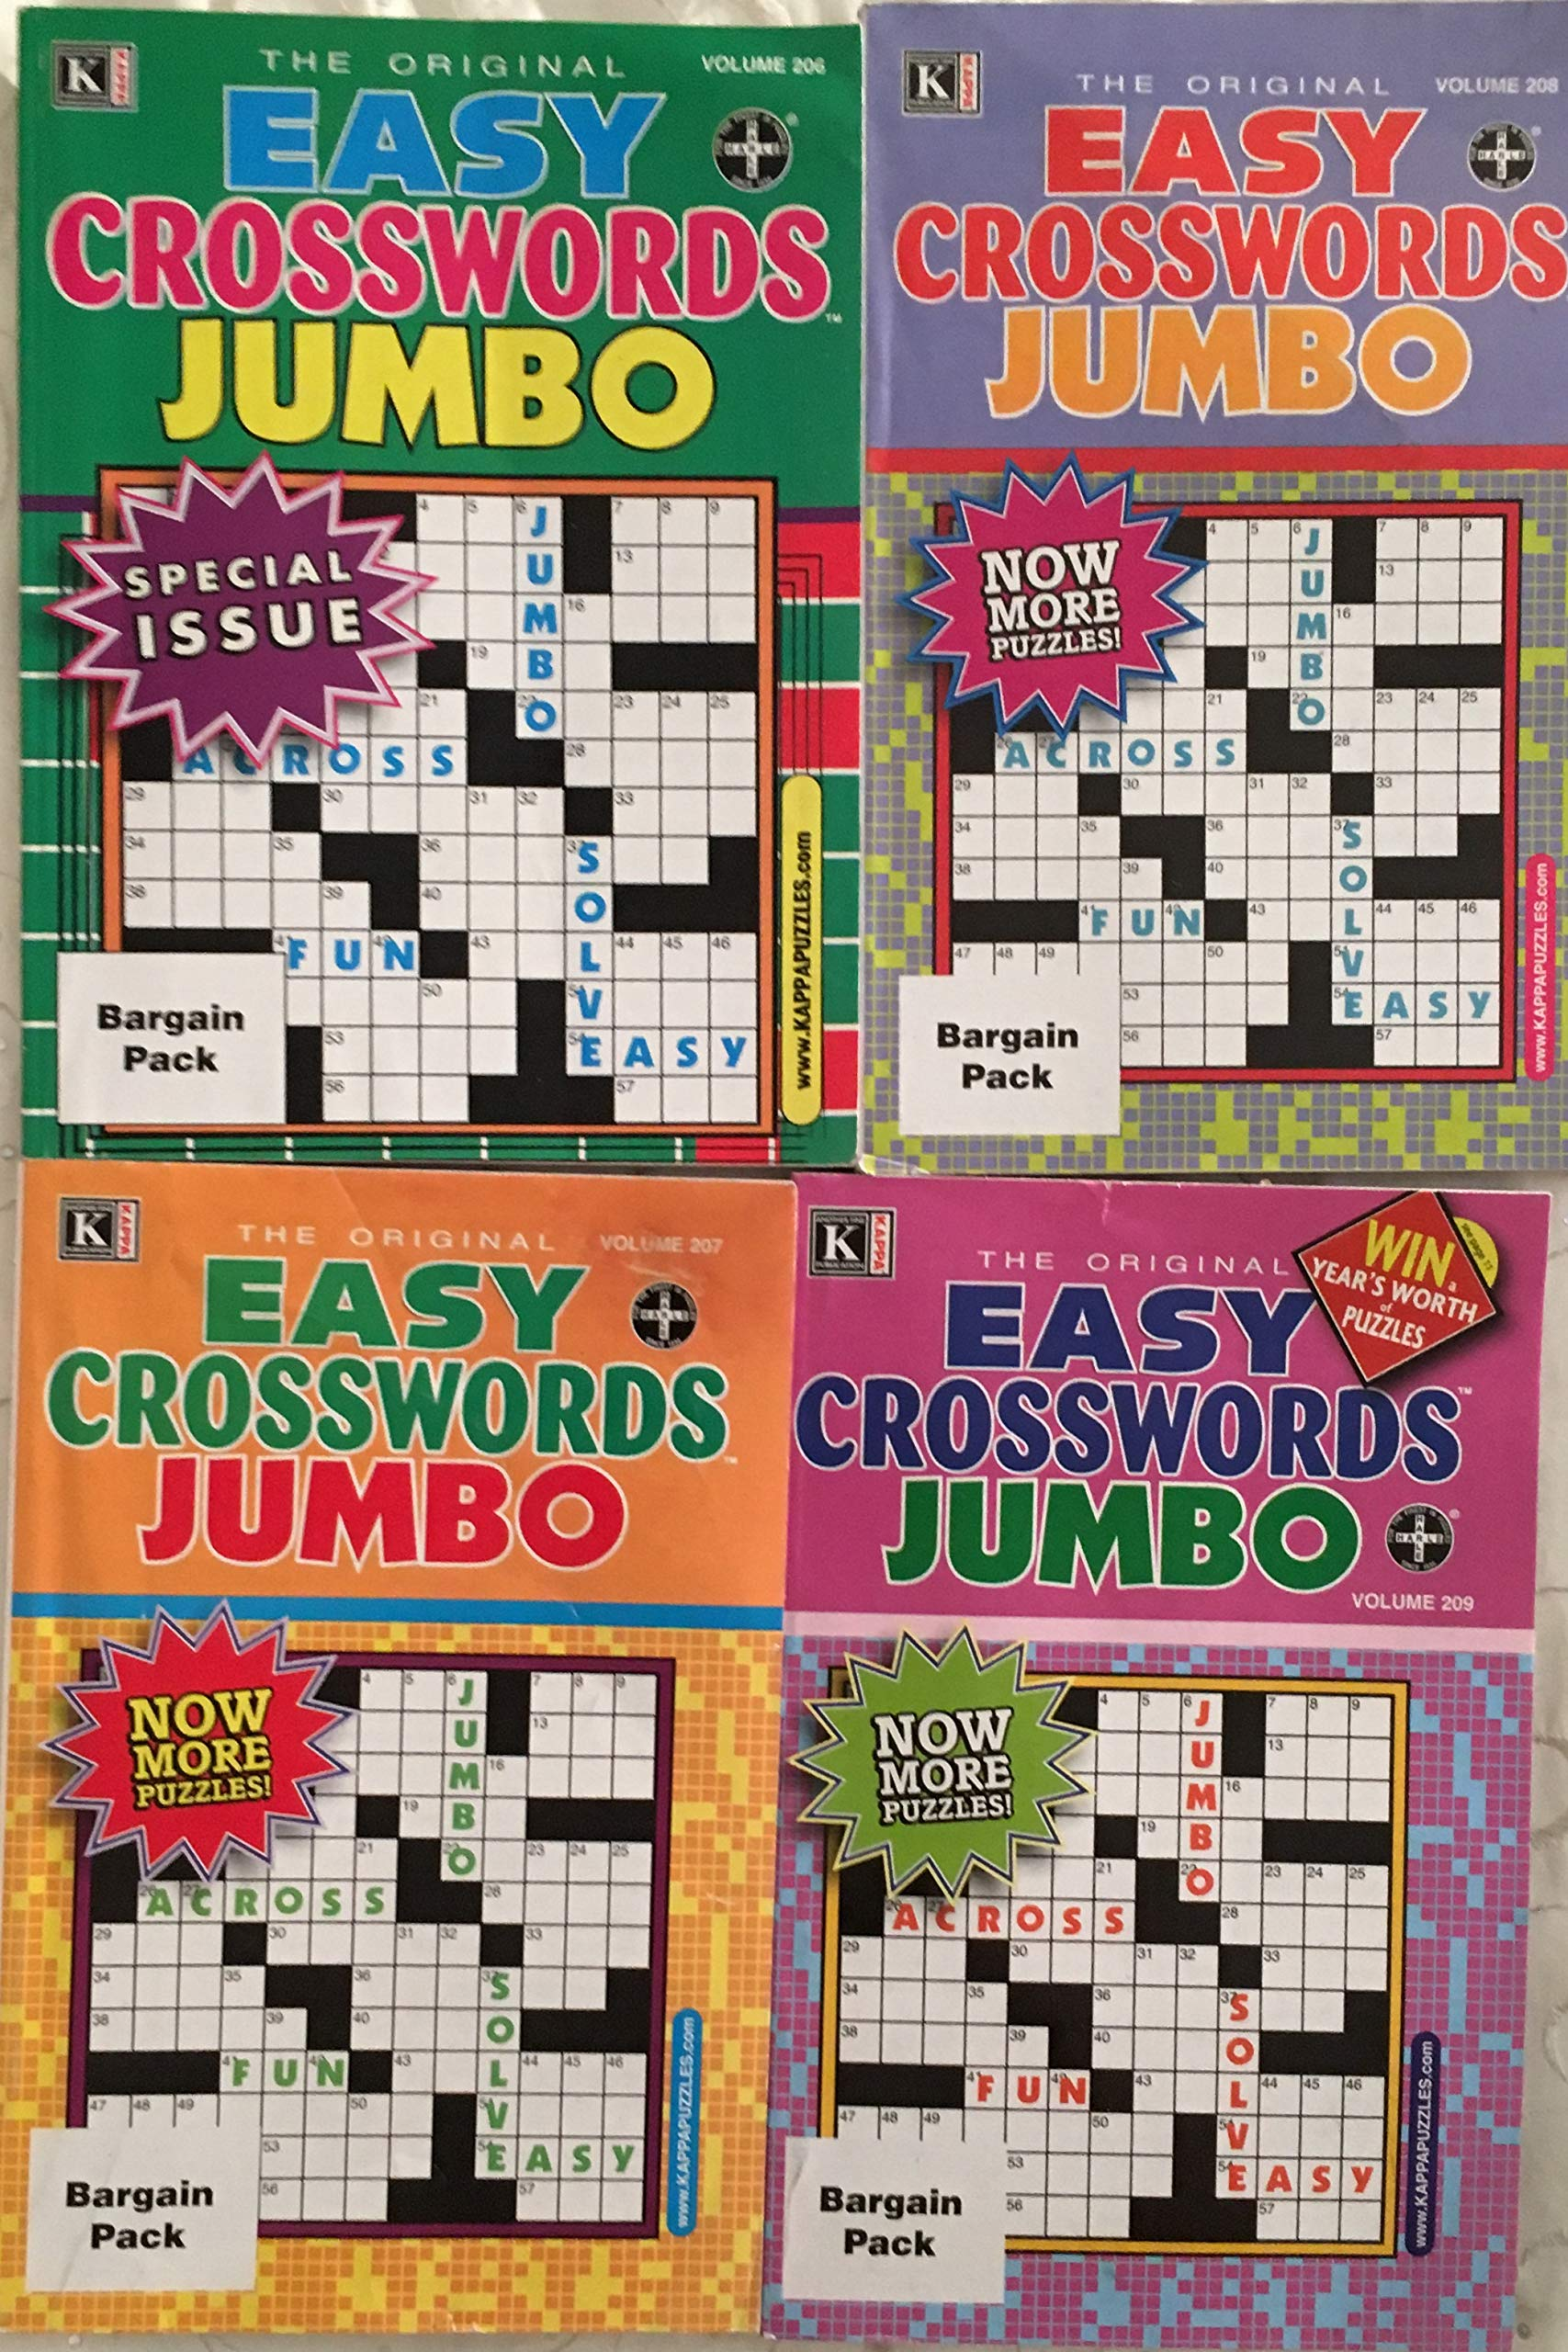 ff3ddc7c0b Lot of 4 Kappa The Original Easy Crosswords Jumbo Special Issue ...